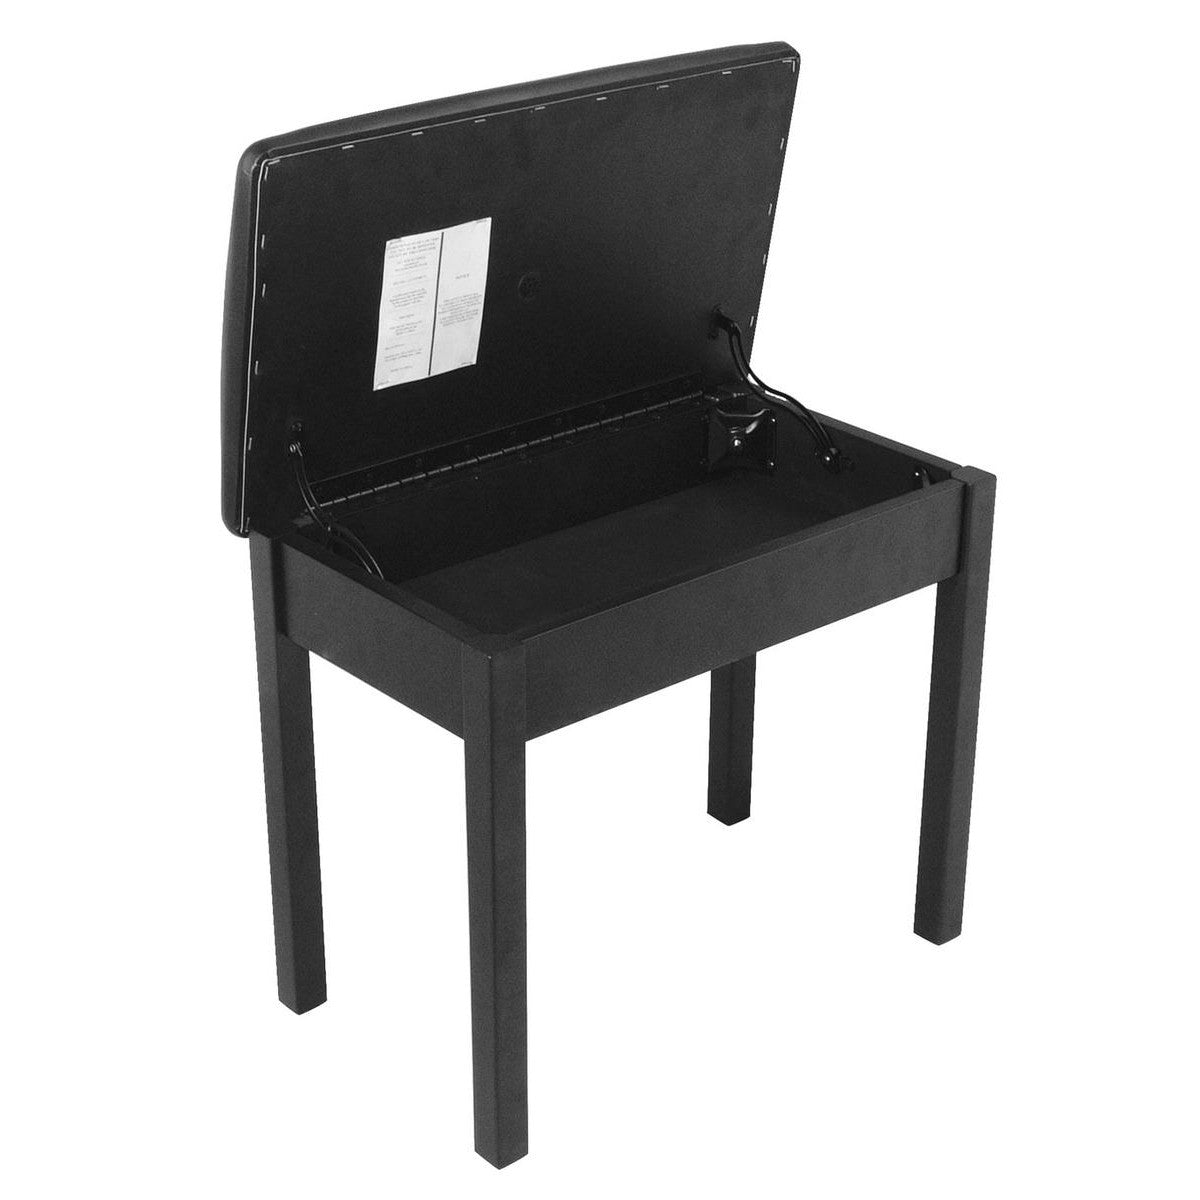 On-Stage KB8902B Piano Bench Flip Top Black